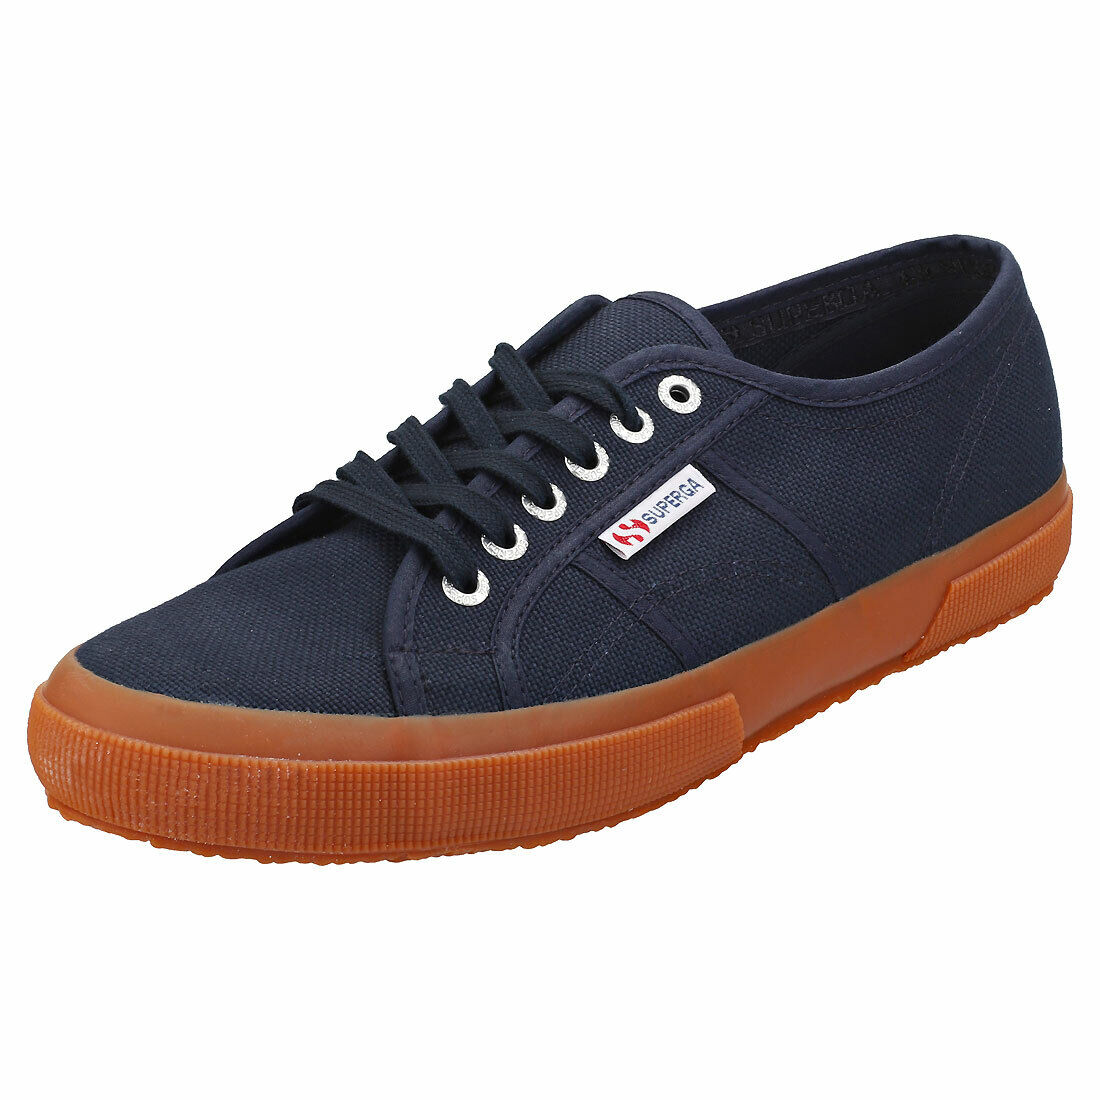 Superga 2750 Cotu Classic Mens Navy Gum Canvas Plimsoll Trainers